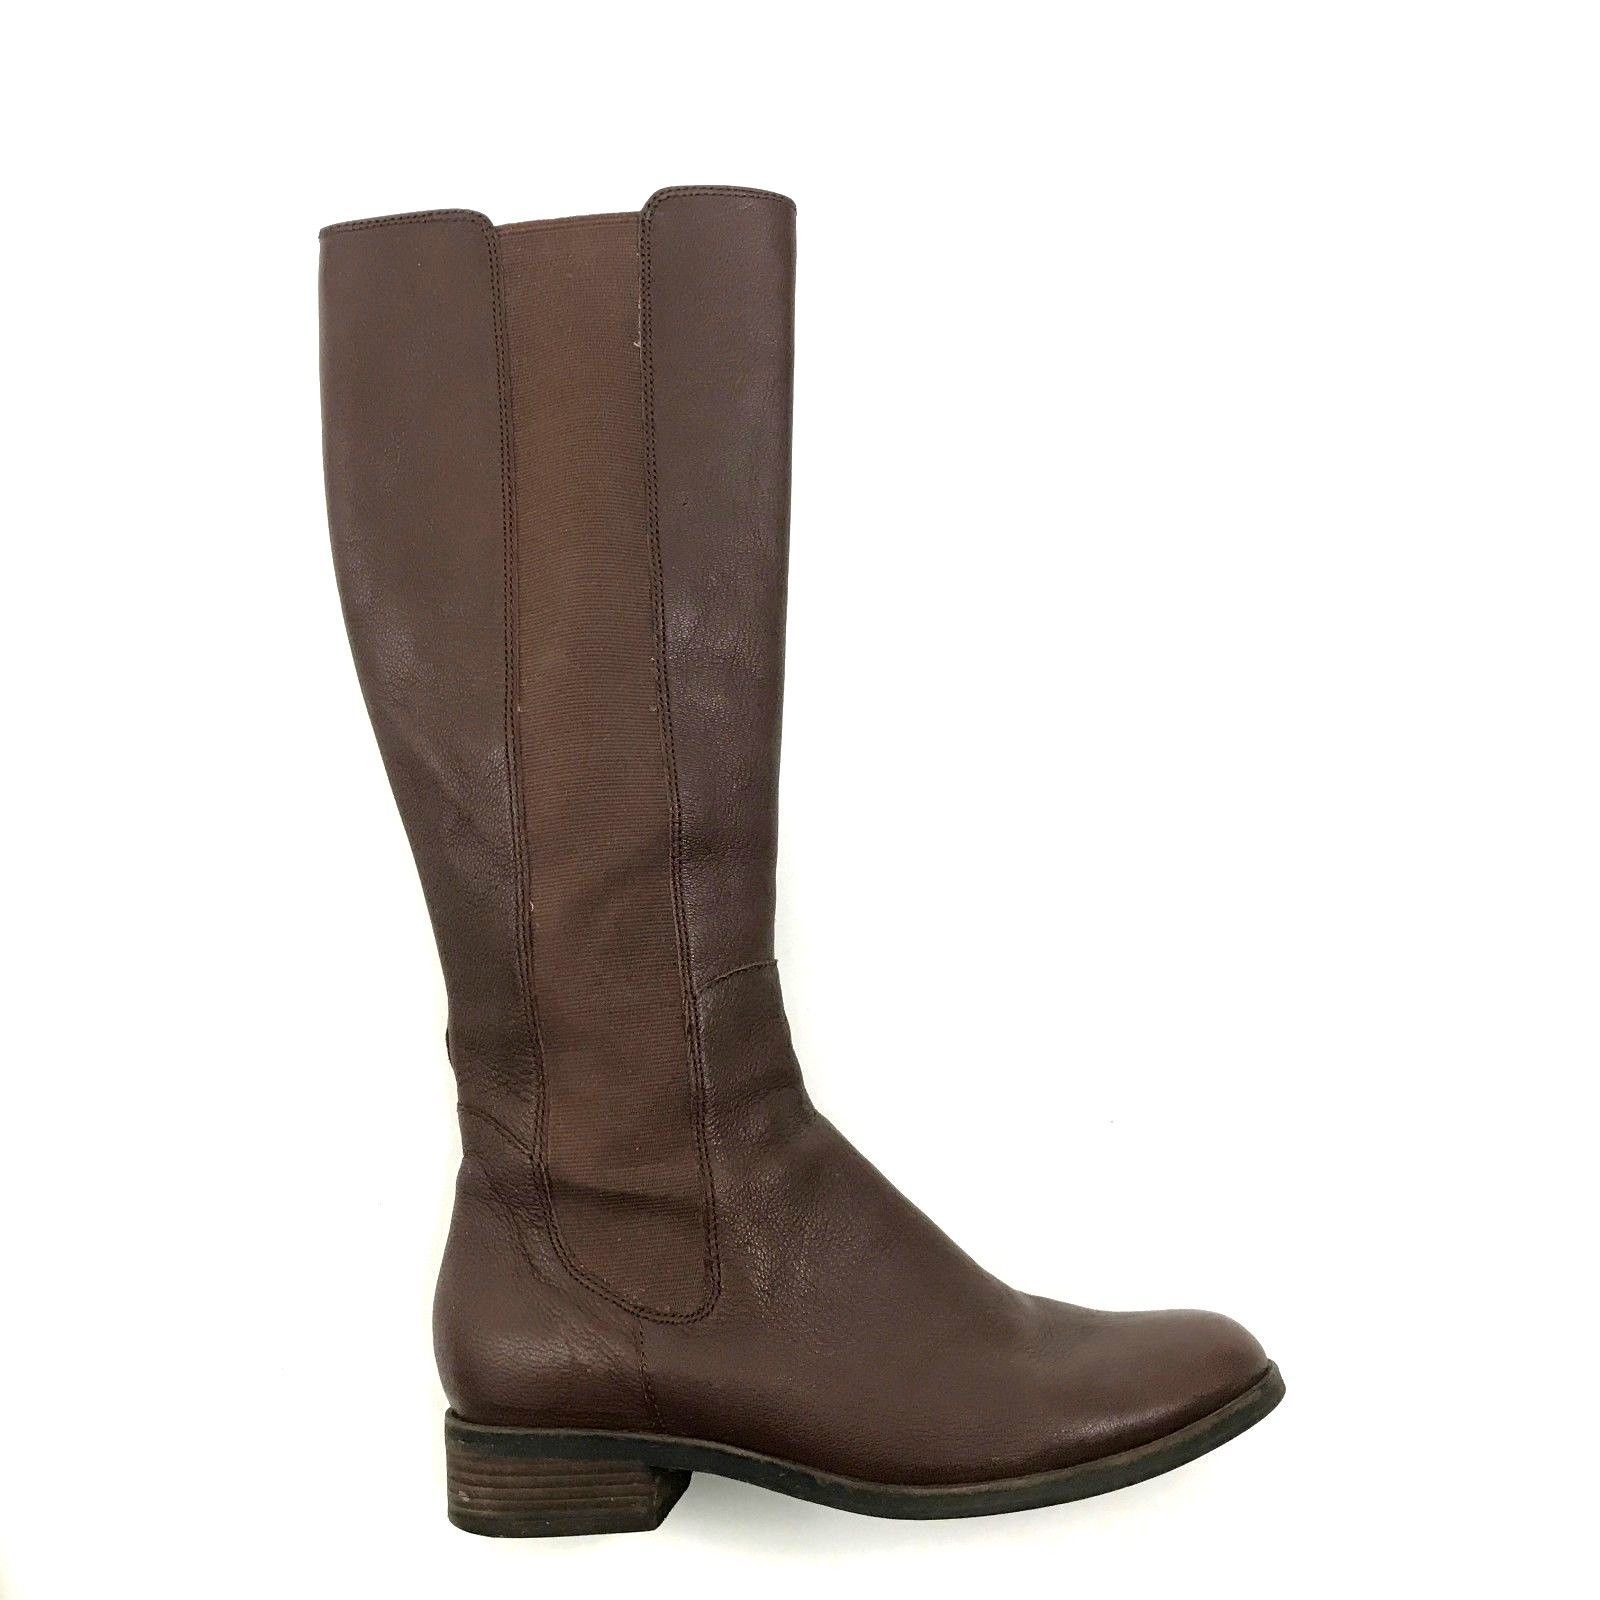 uk availability 993b3 8fadf Cole HAAN Kniehohe Stiefel Damen 9.5 Braun and 28 similar items